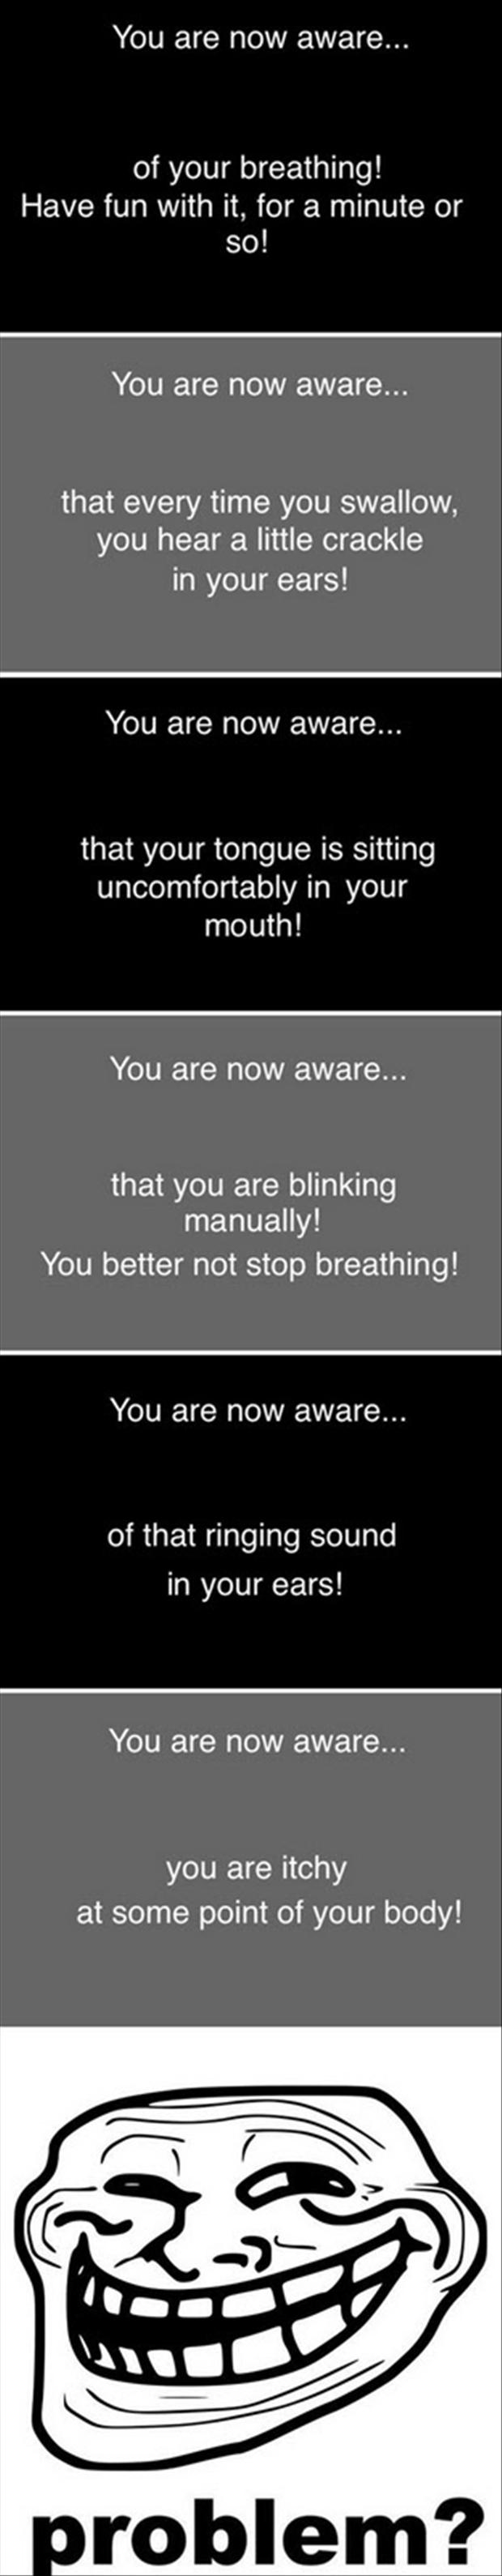 you are now aware, funny quotes